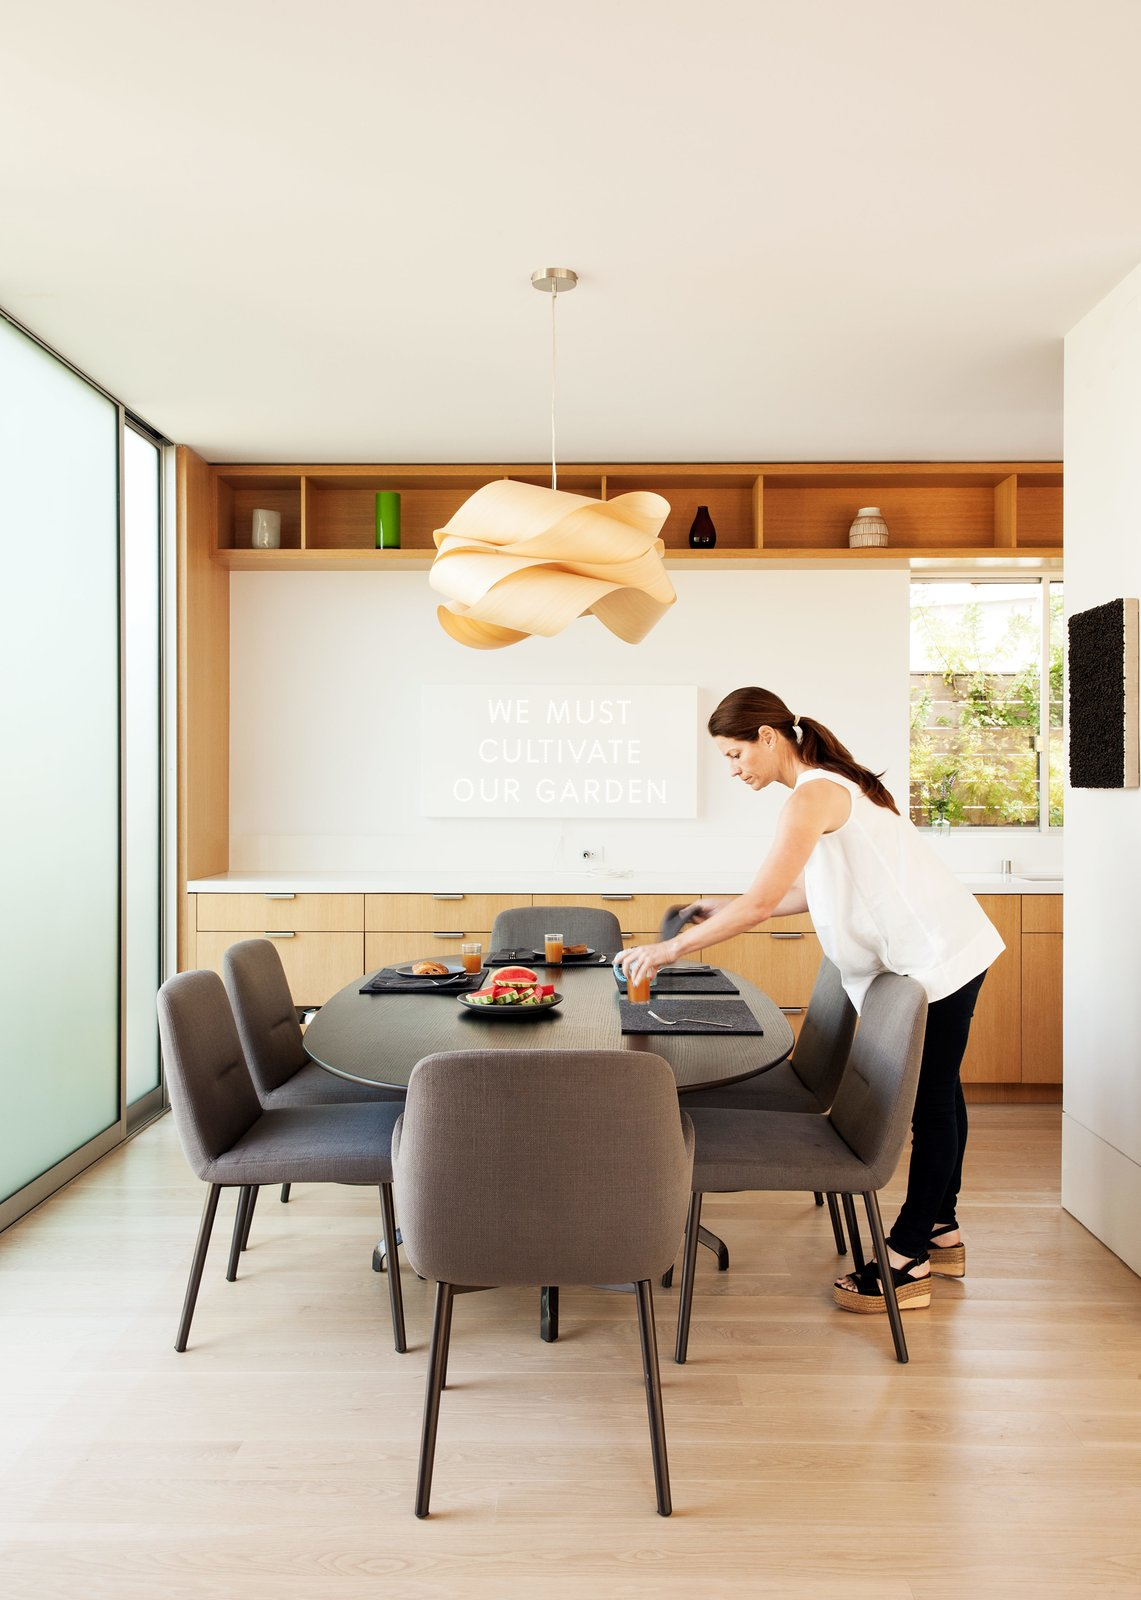 Dining Room, Chair, Light Hardwood Floor, Pendant Lighting, and Table A EuroStone countertop structures the open-plan kitchen and dining room, where the family will often gather and play.  Best Photos from Amid a Hotbed of Architecture, This Home Holds Its Own